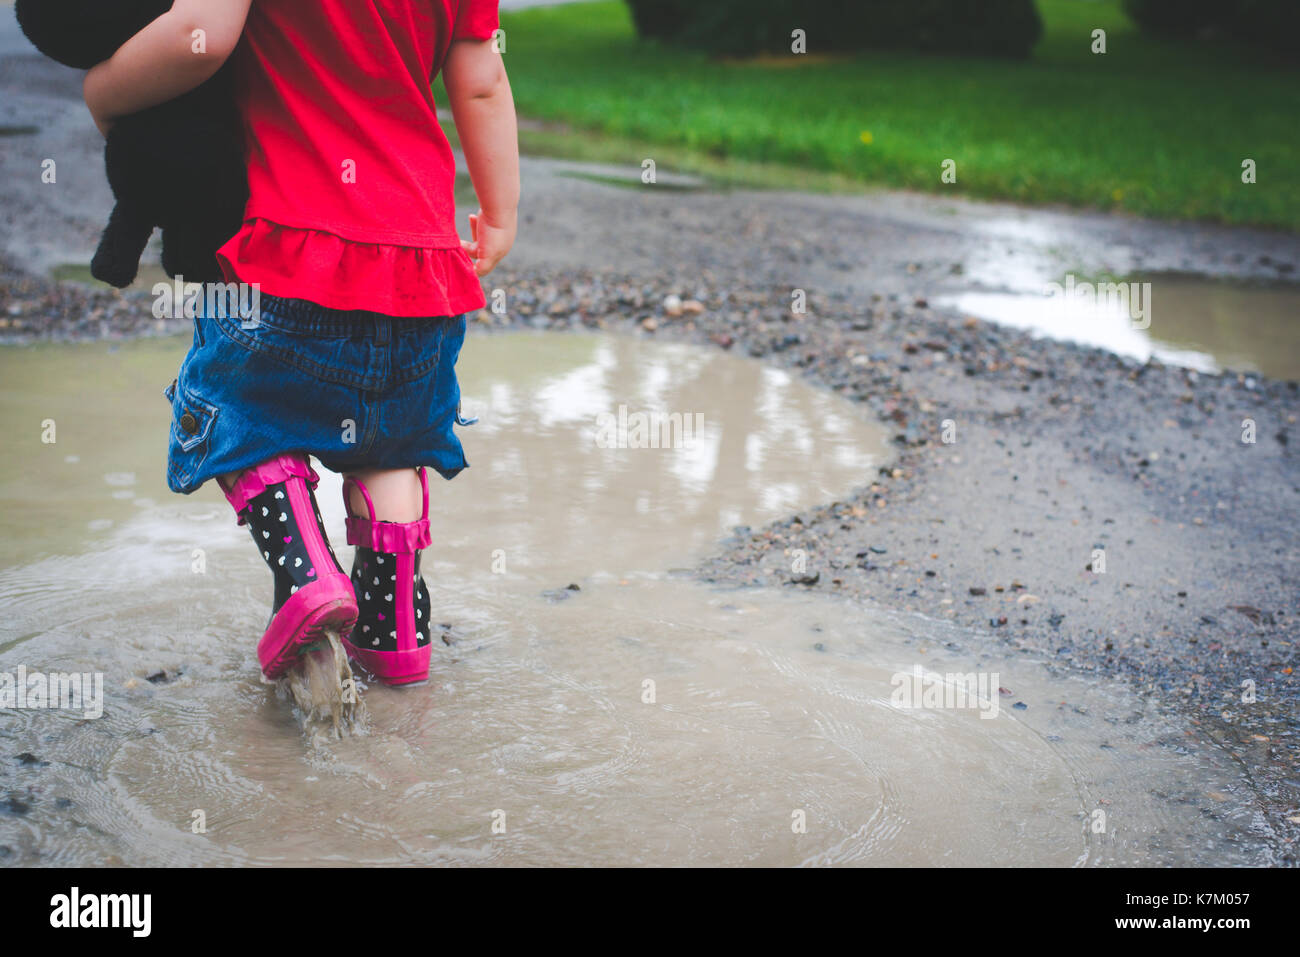 A toddler walking in a mud puddle in rain boots carrying a stuffed animal - Stock Image